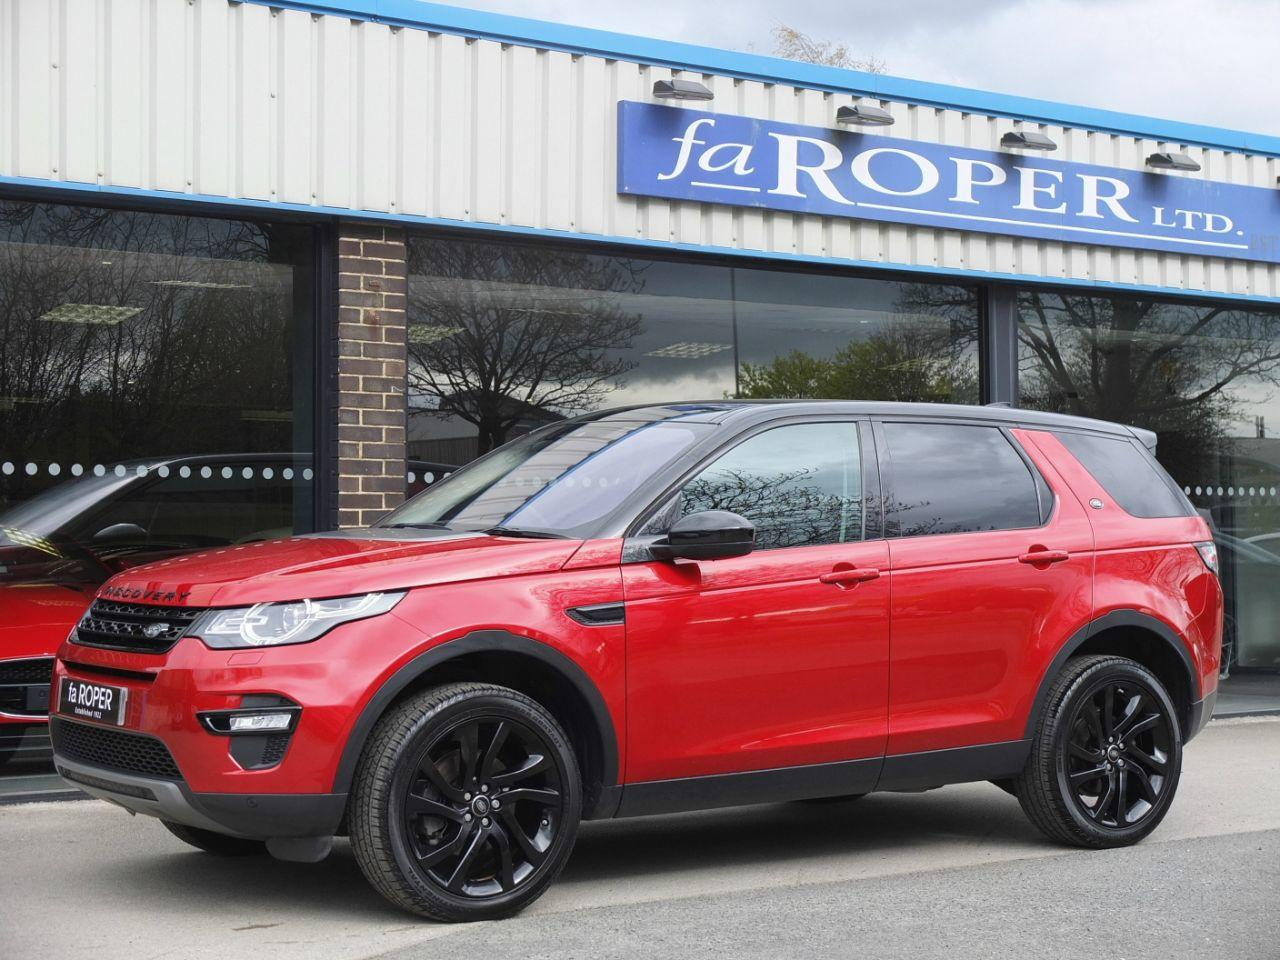 Land Rover Discovery Sport 2.0 TD4 180 HSE Black Auto Estate Diesel Firenze Red